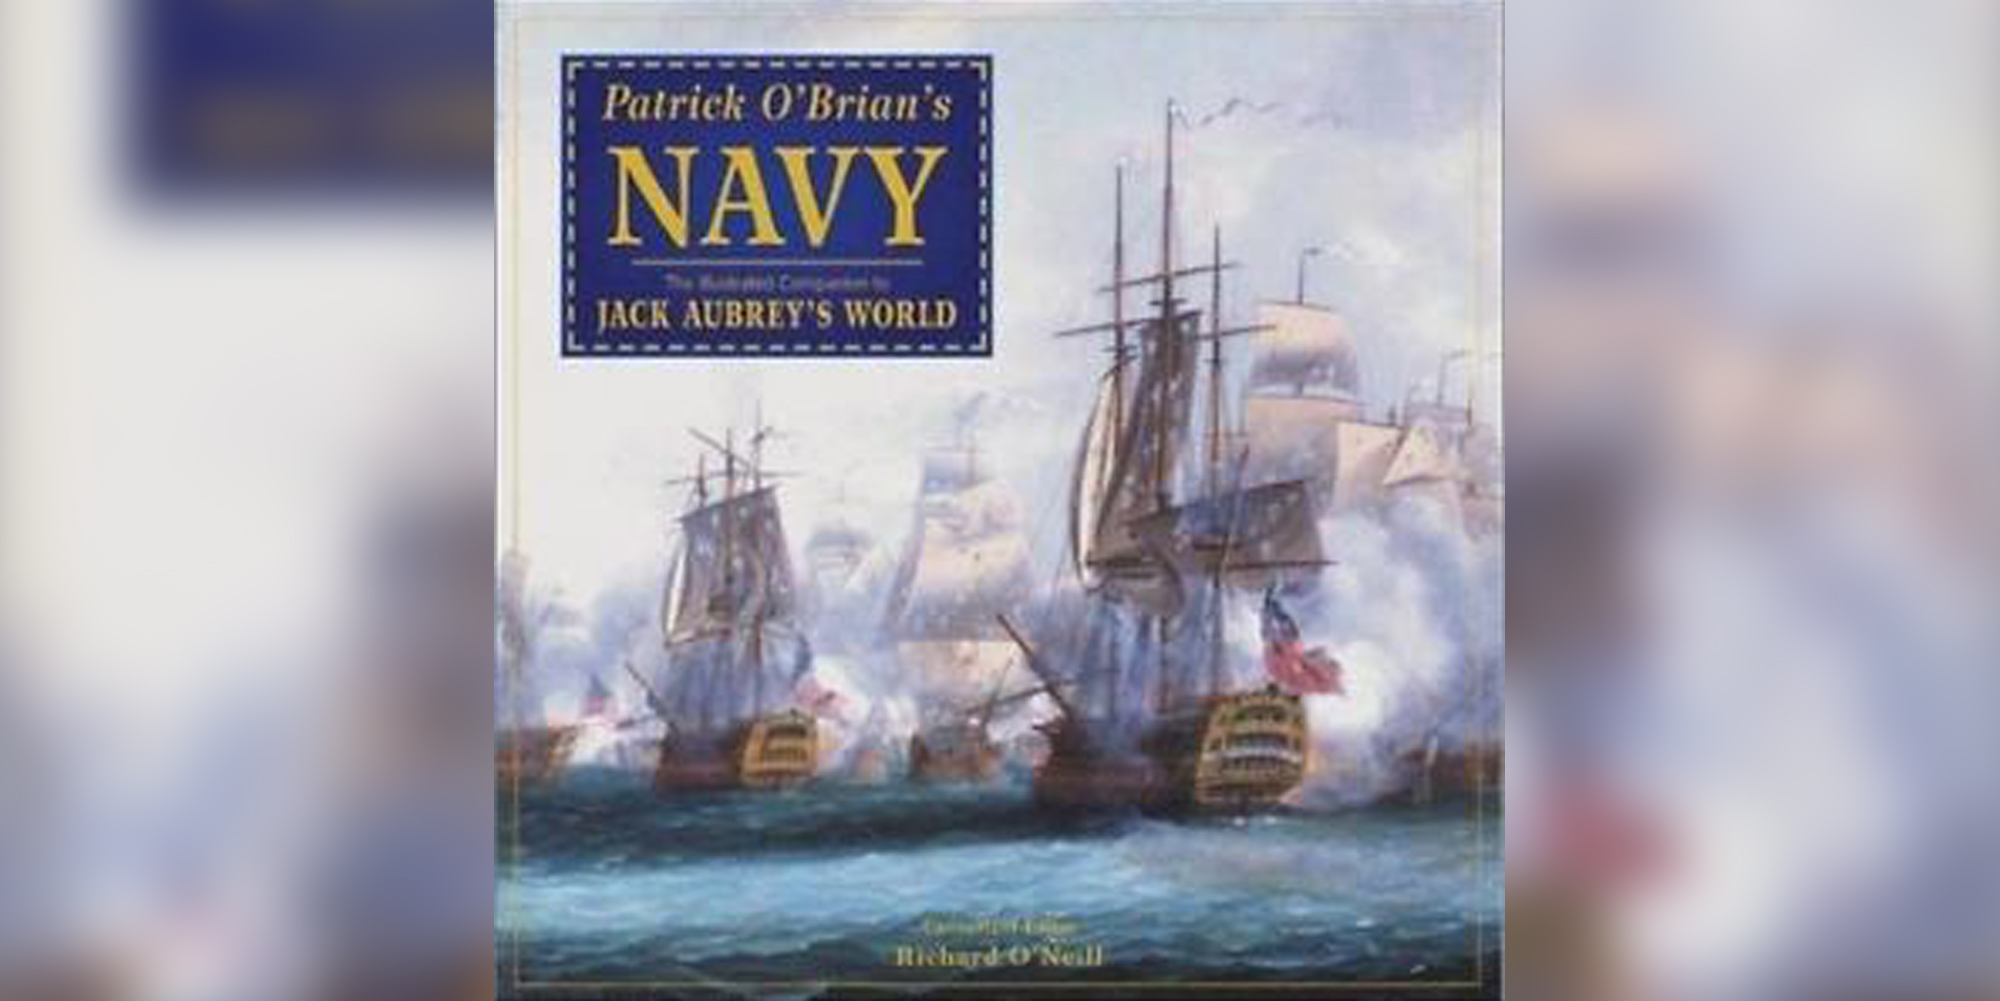 Patrick O'Brian's Navy – Illustrated Companion to Aubrey's World – Fupping